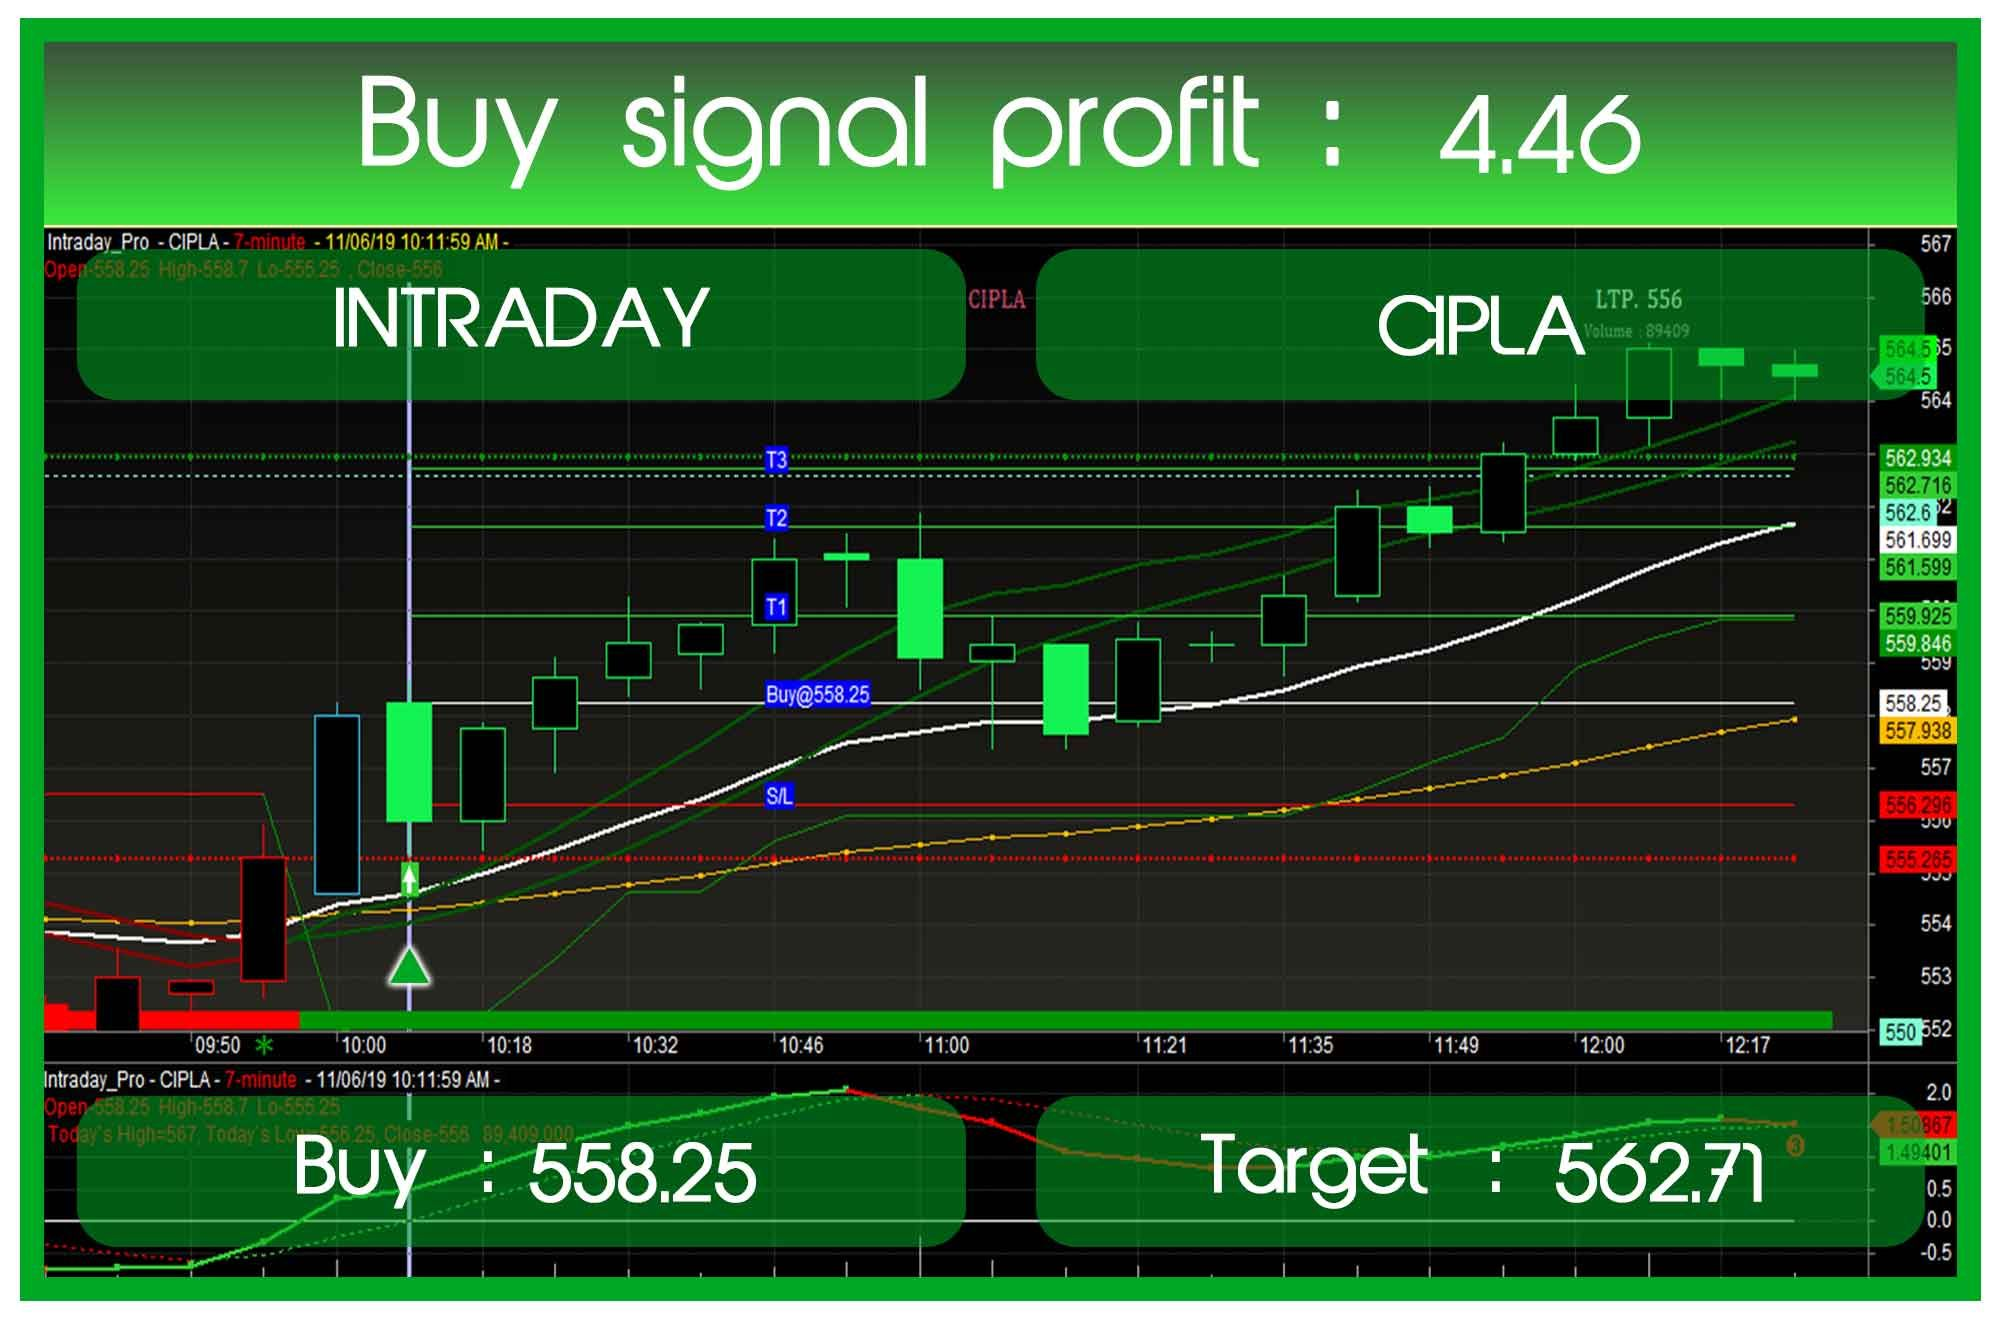 Nse Cipla Automatic And Accurate Buy And Sell Signal Software For